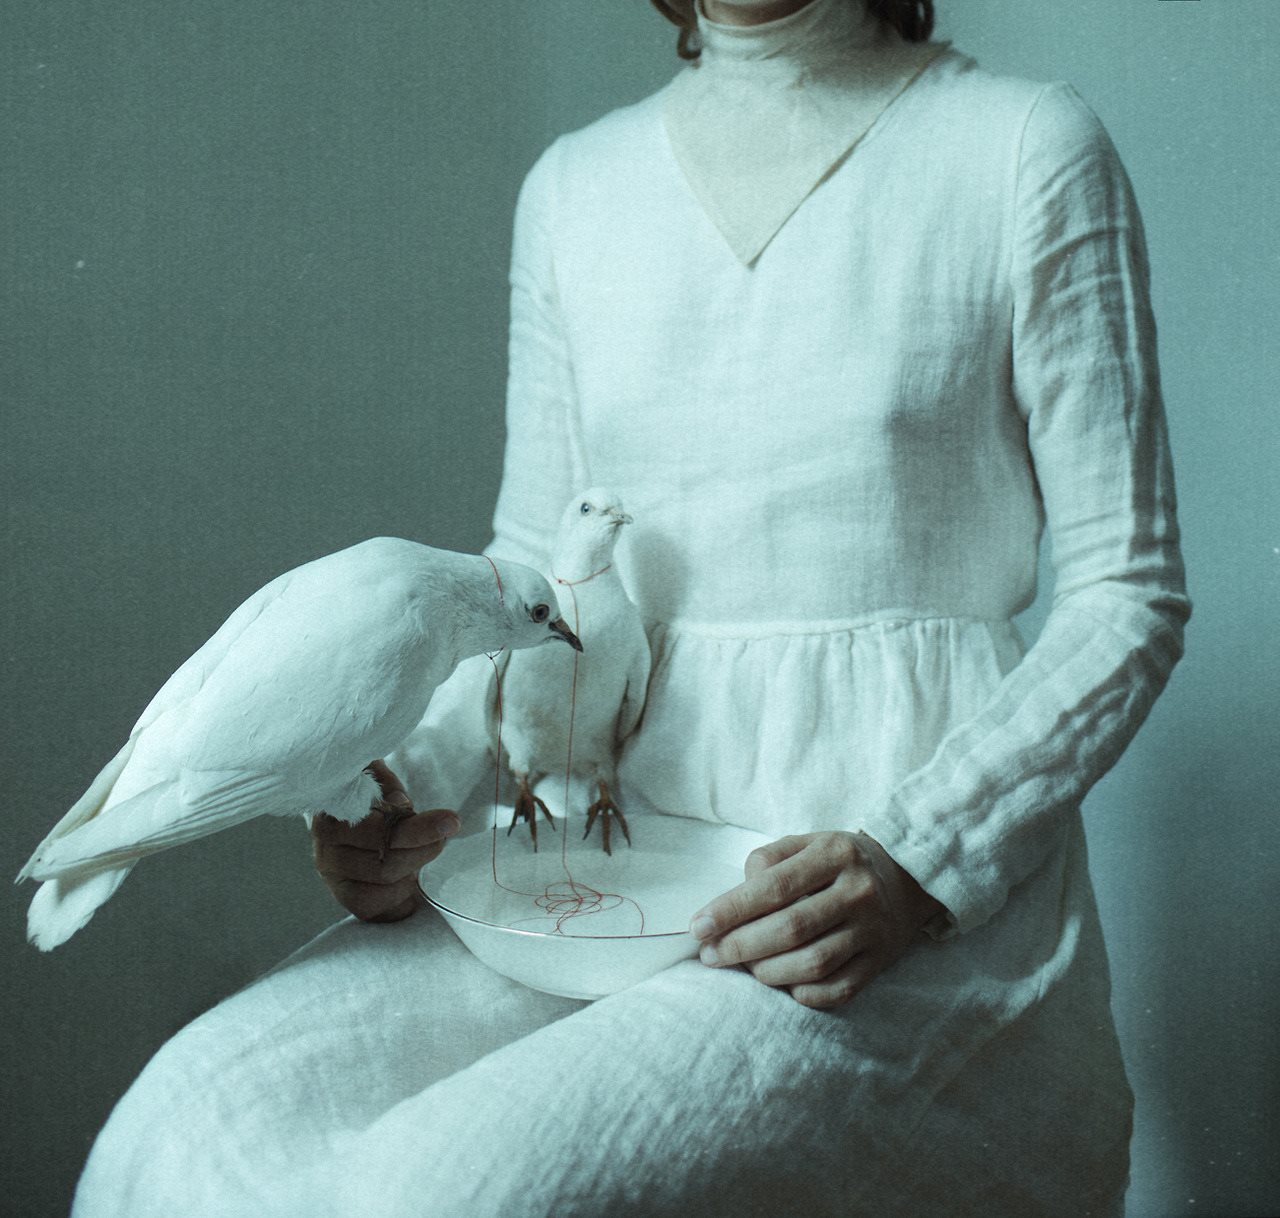 Laura Makabresku – Mystic photography